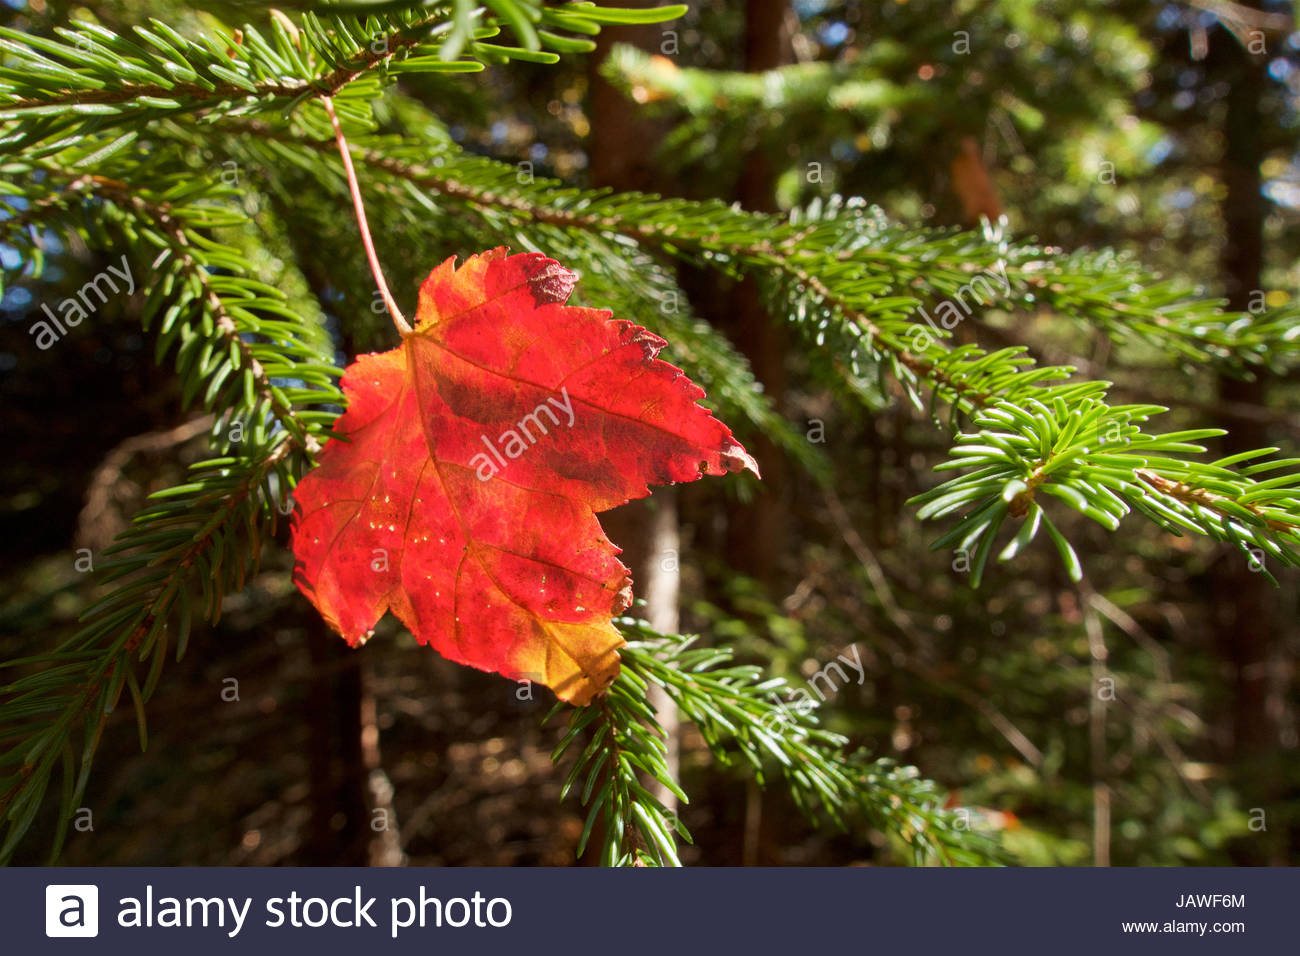 A red maple leaf rests on a conifer bow. Stock Photo